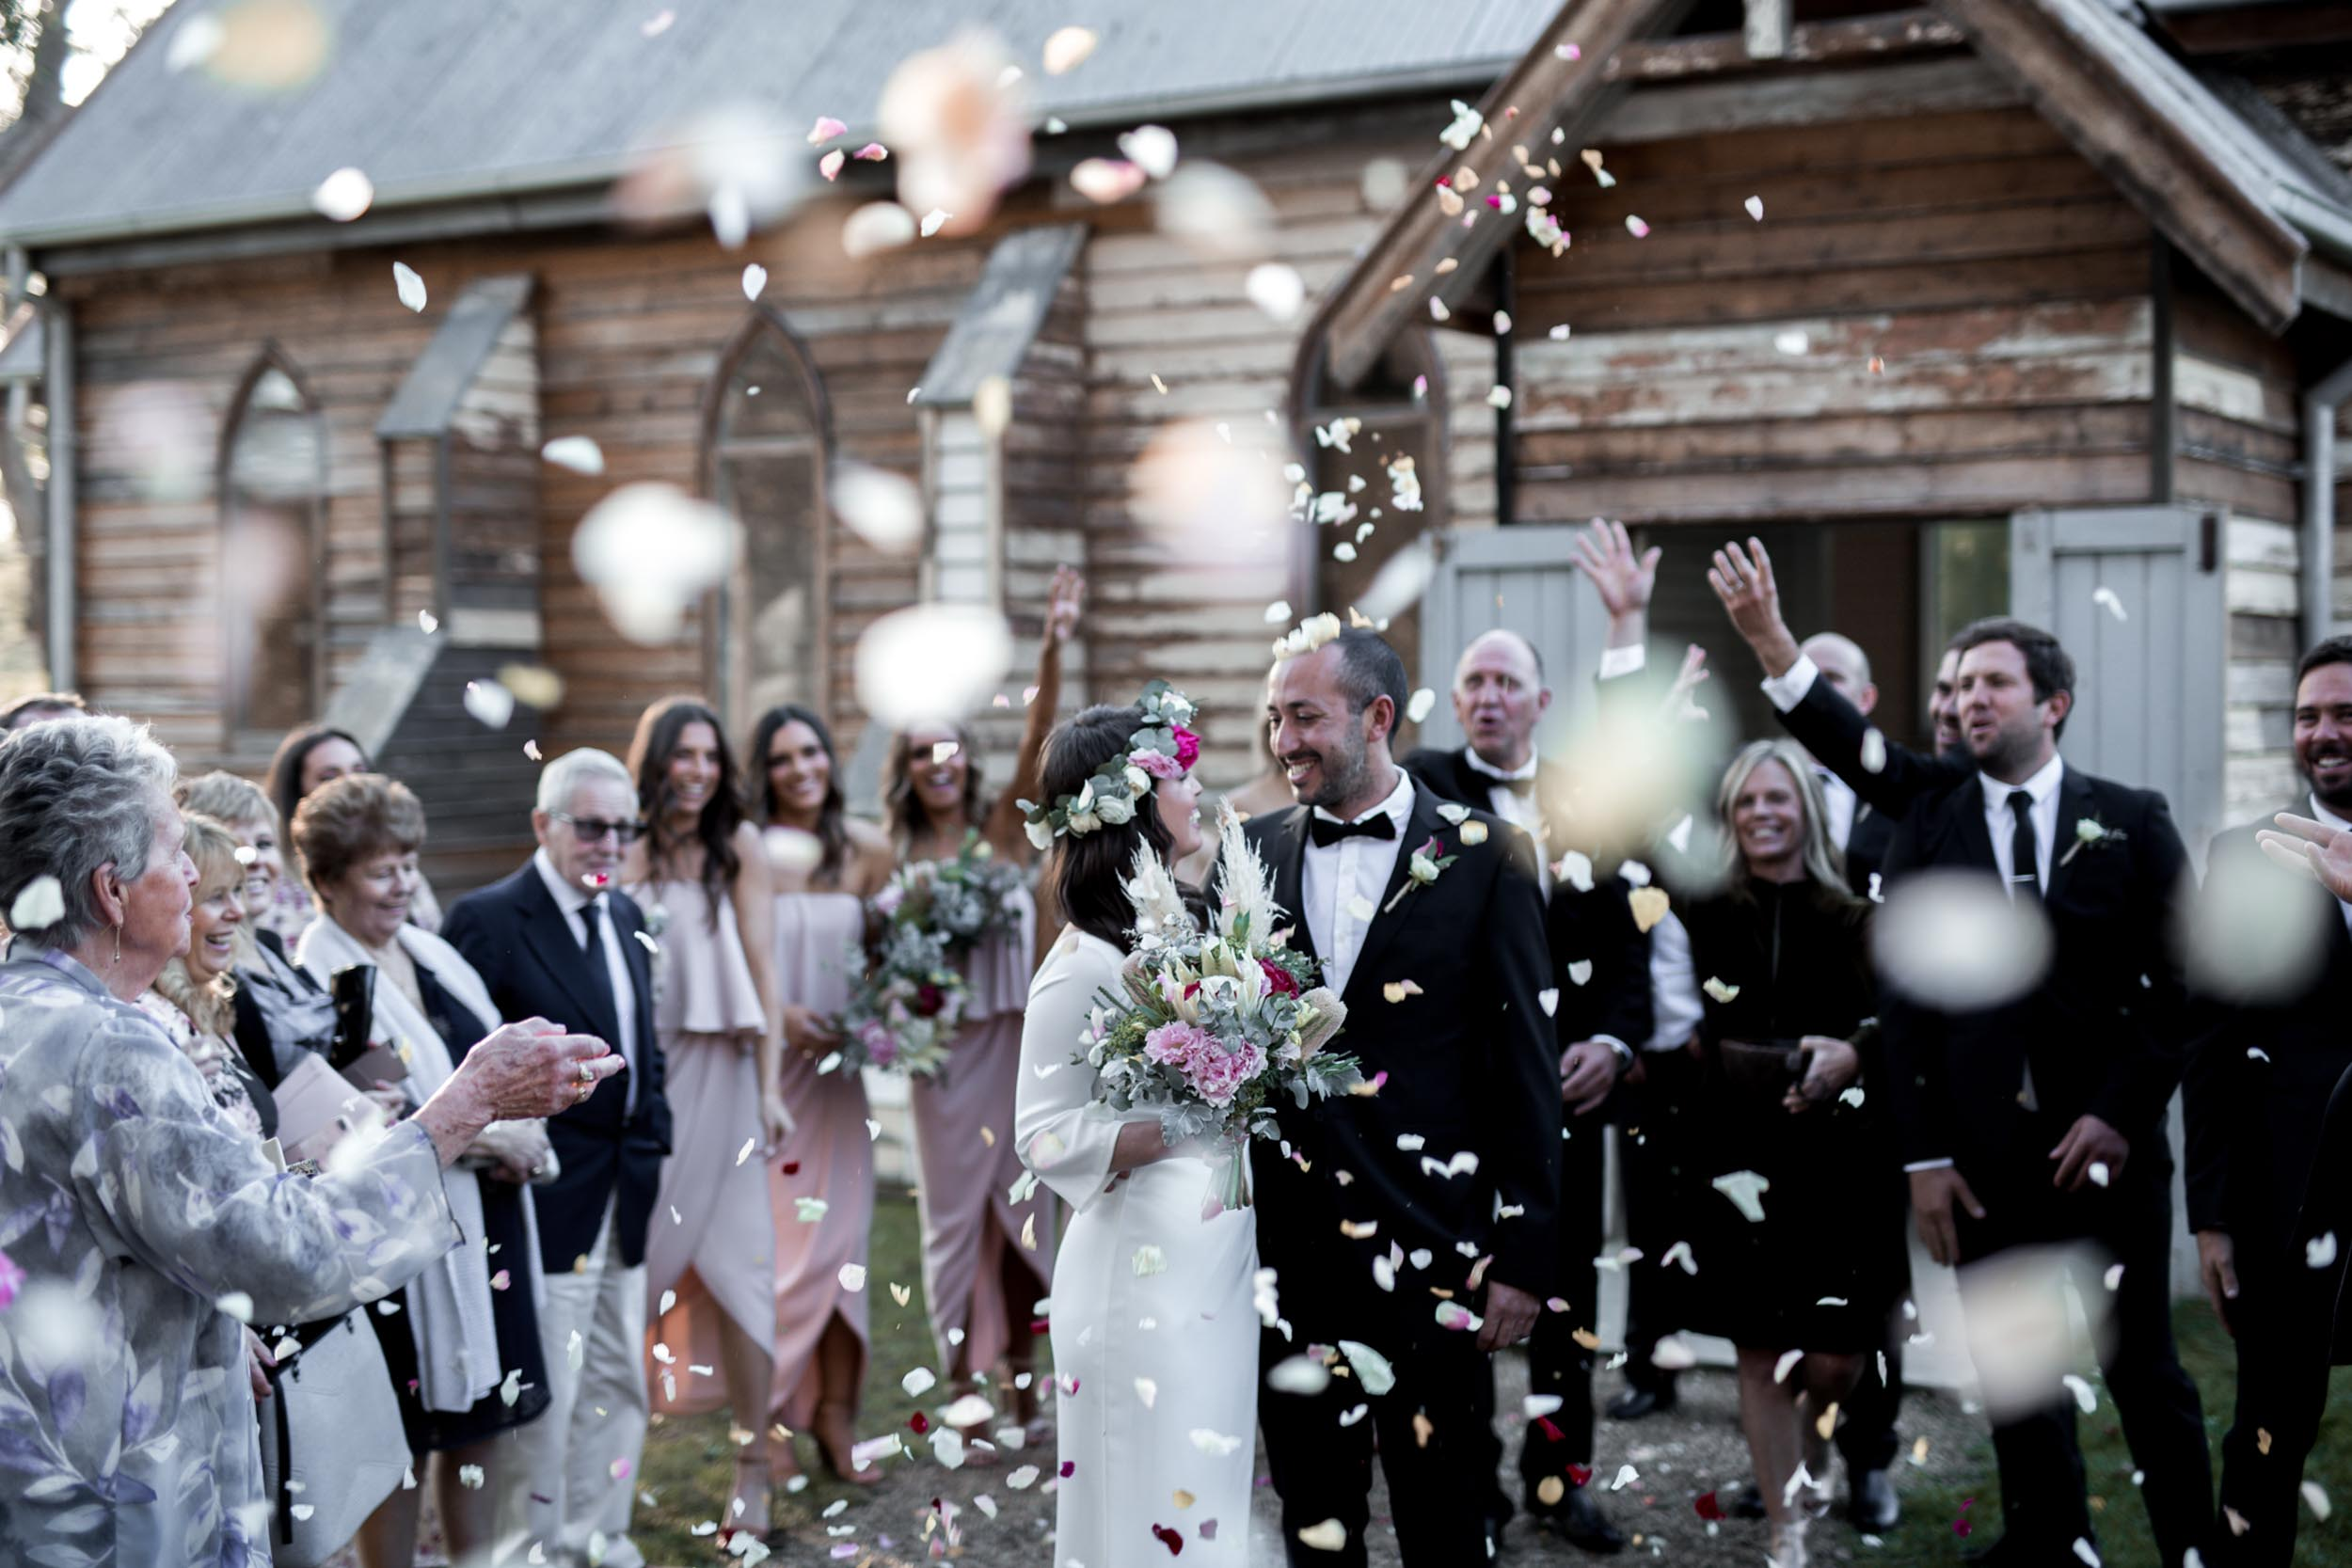 """Caitlin & Vas - Amongst closest family and friends, Caitlin & Vas said """"I do"""" with an intimate bohemian wedding at Tanglewood Estate."""